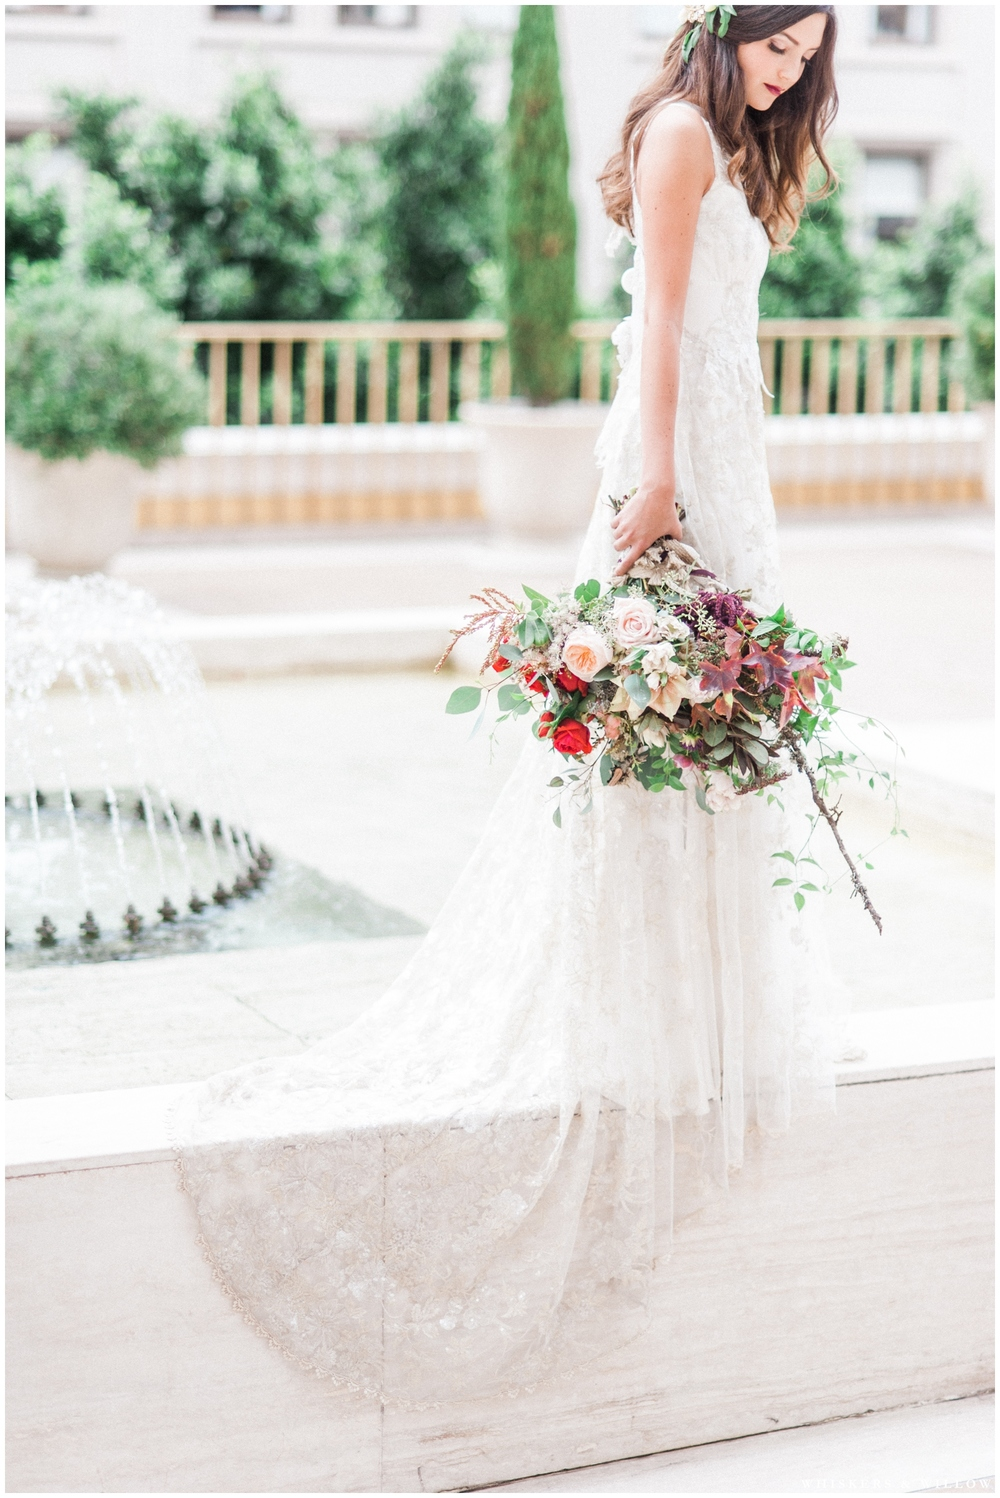 Eden by Claire Pettibone Romantique wedding gown | Bridal bouquet by Native Poppy | Romantic Westgate Hotel Wedding | San Diego Fine Art Wedding Photography | Whiskers and Willow Photography